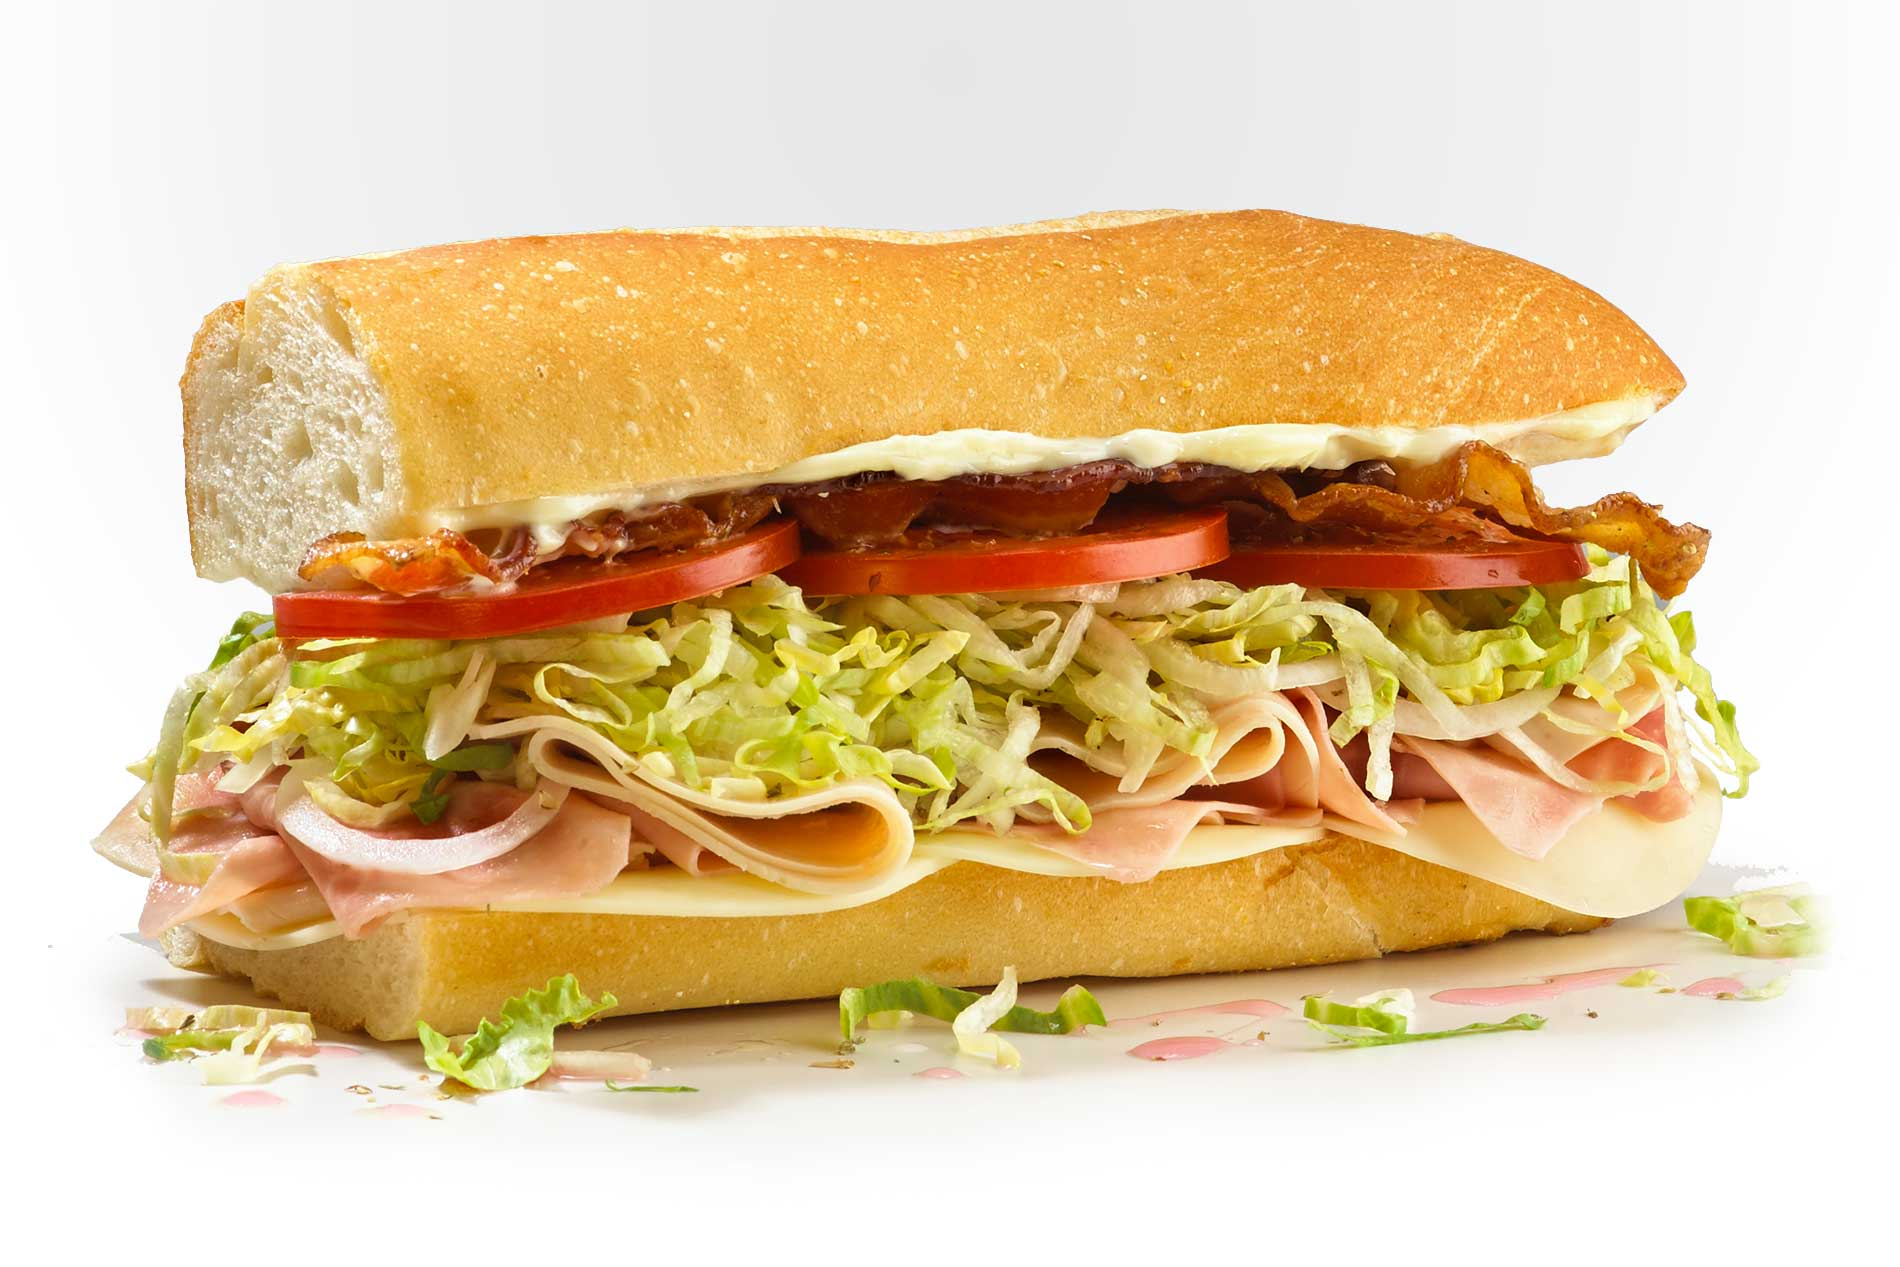 8 club sub cold subs jersey mike s subs